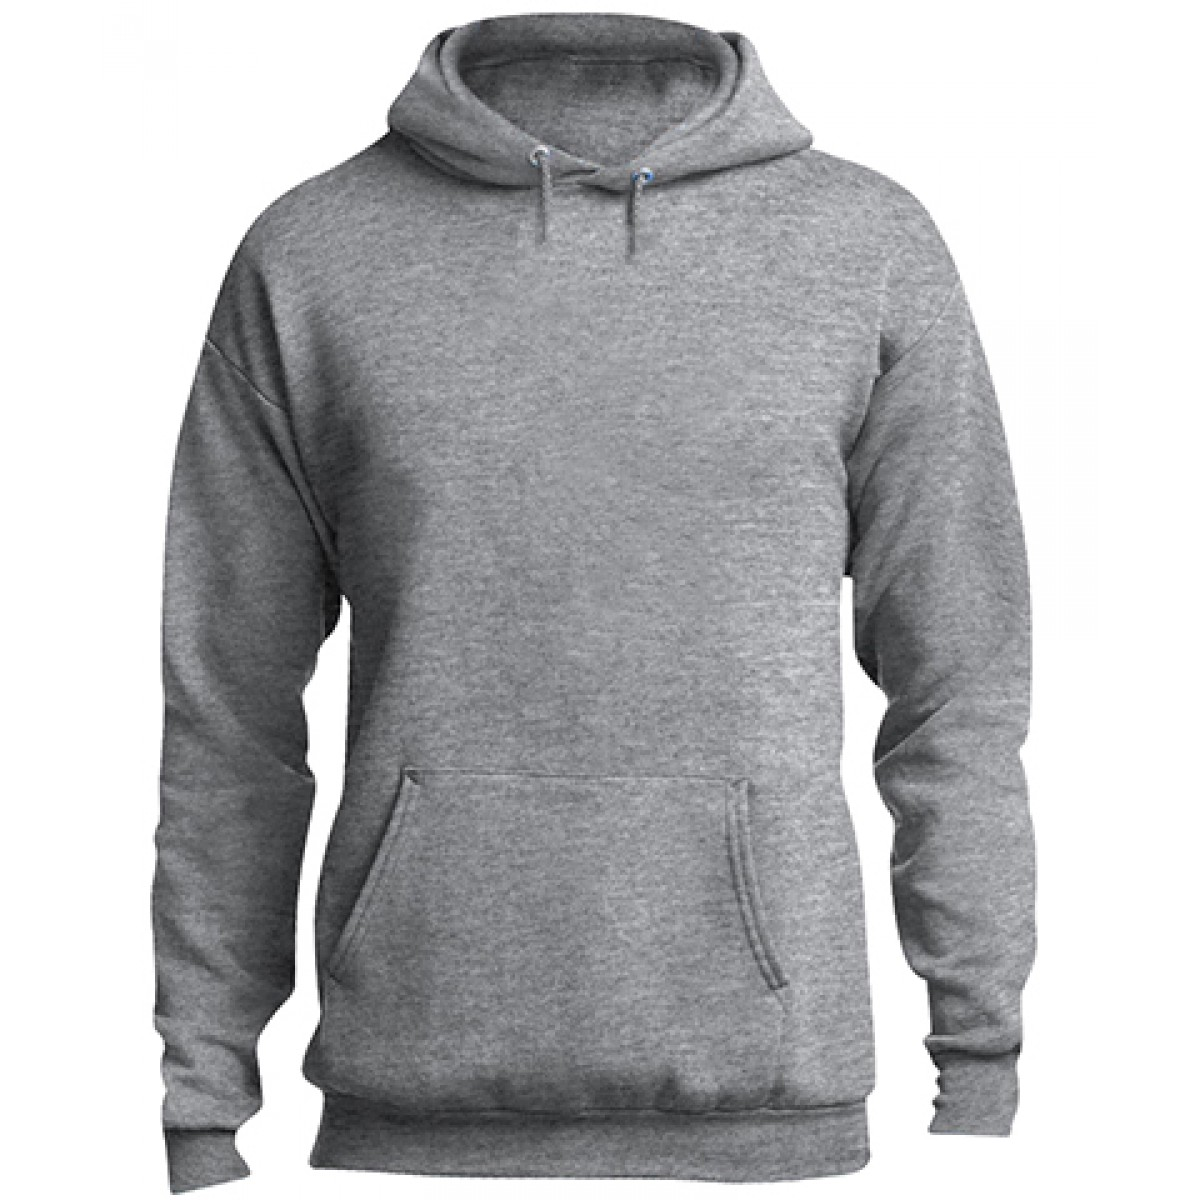 Classic Pullover Hooded Sweatshirt-Athletic Heather-3XL